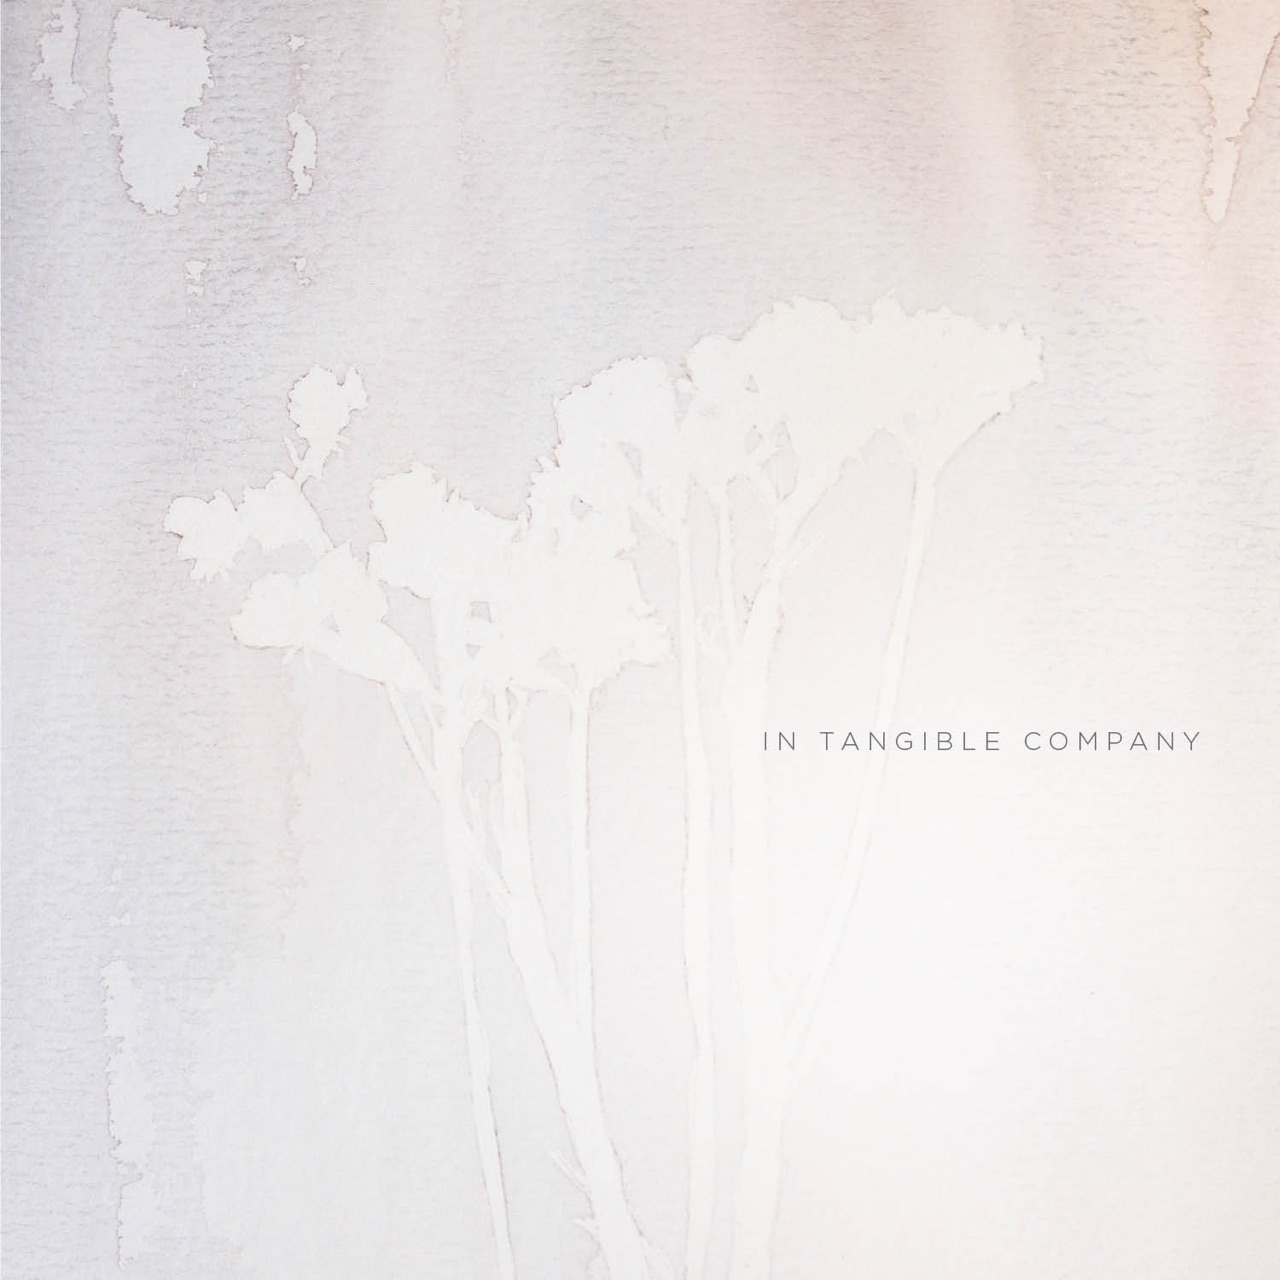 No Stranger - In Tangible Company